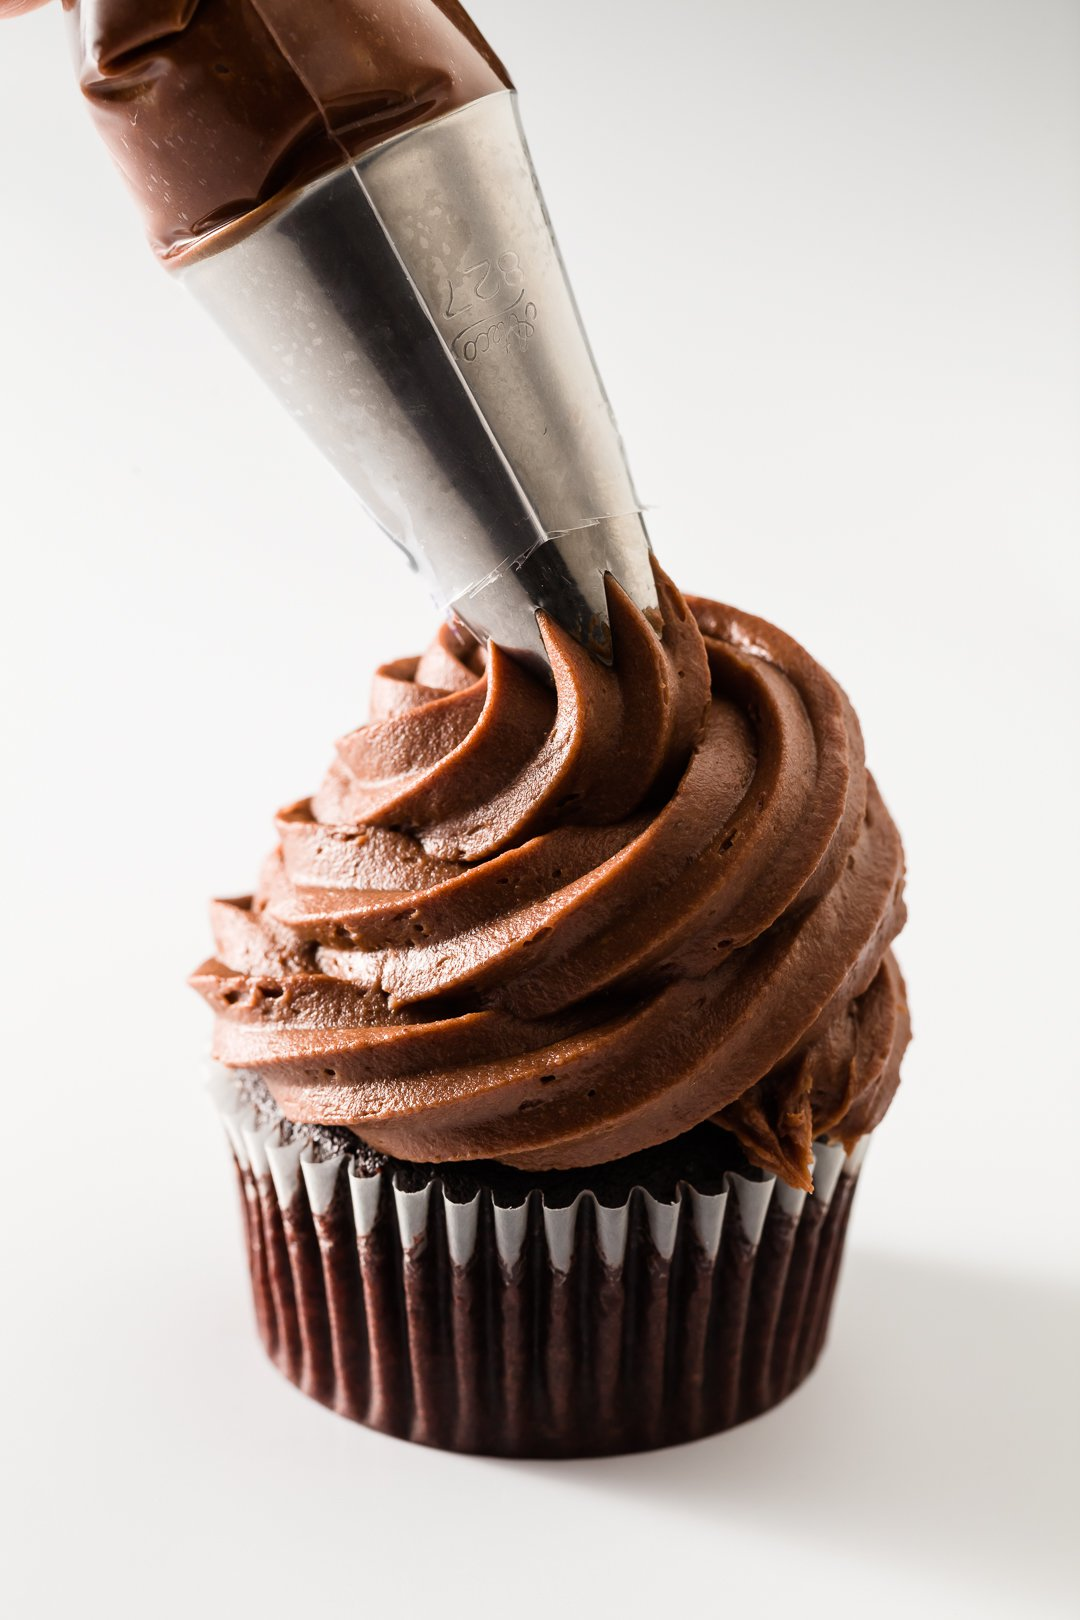 Perfect Chocolate Cream Cheese Frosting